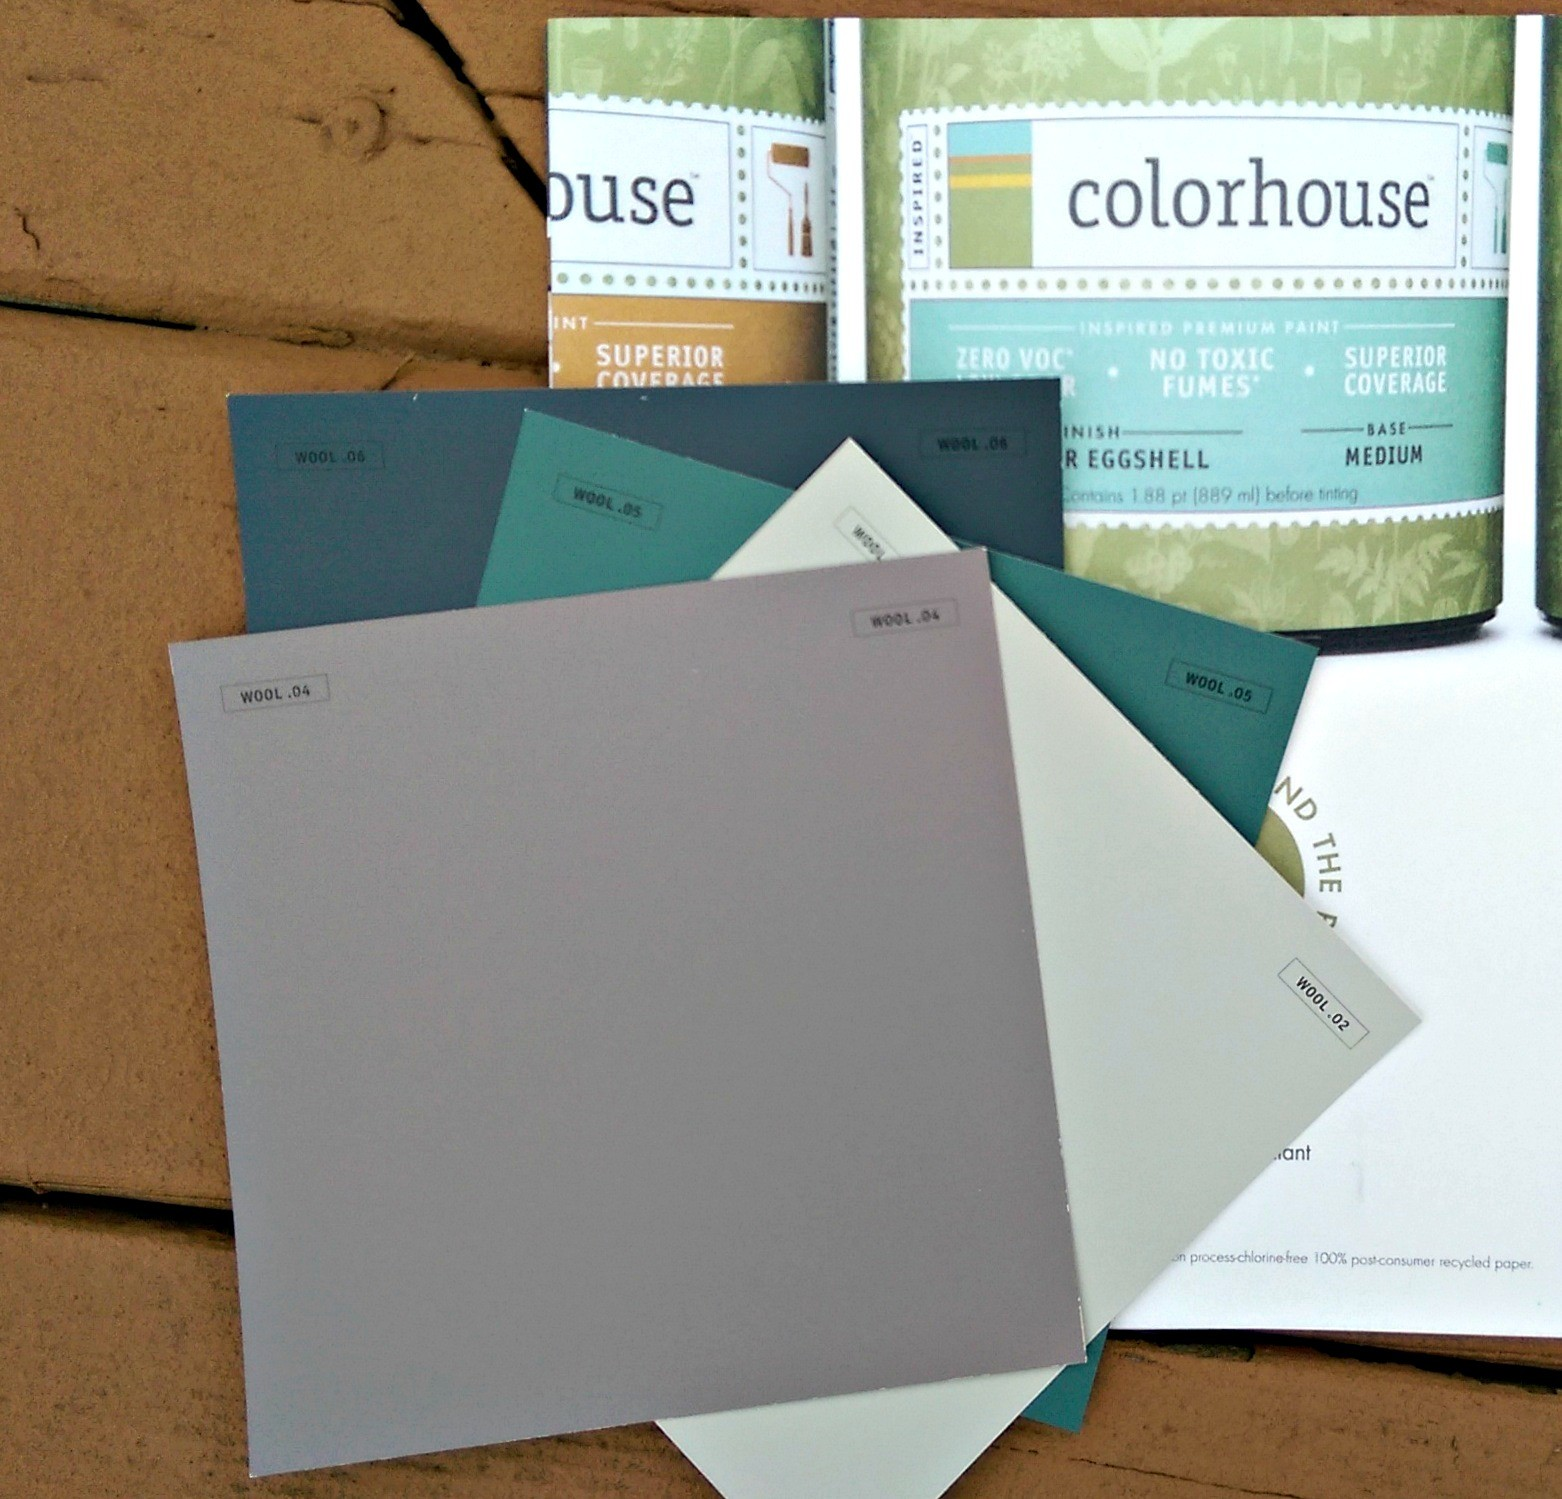 Colorhouse paints non-toxic